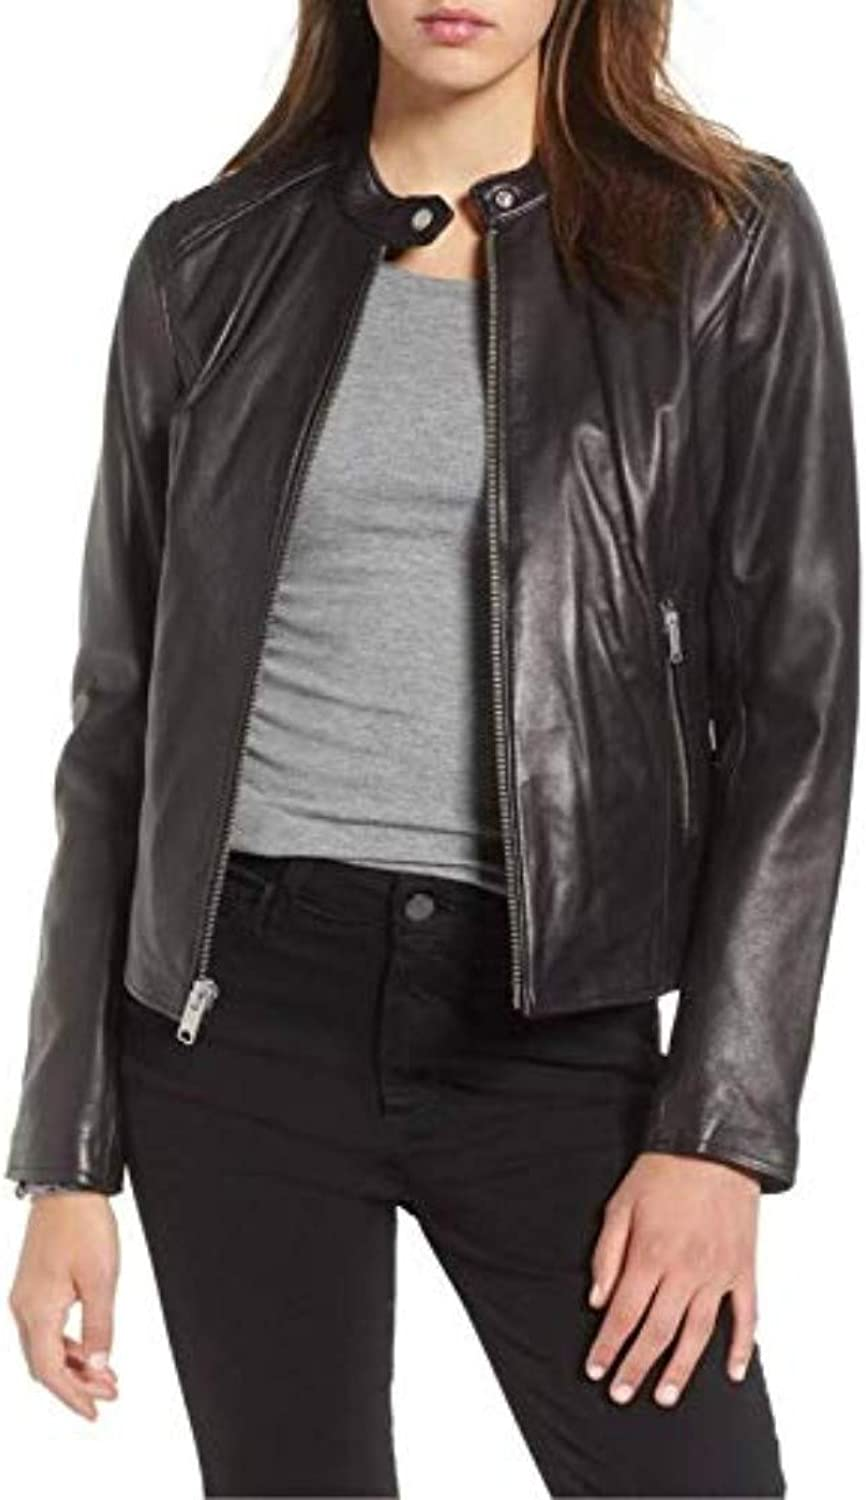 New Fashion Style Women's Leather Jackets Black D88_